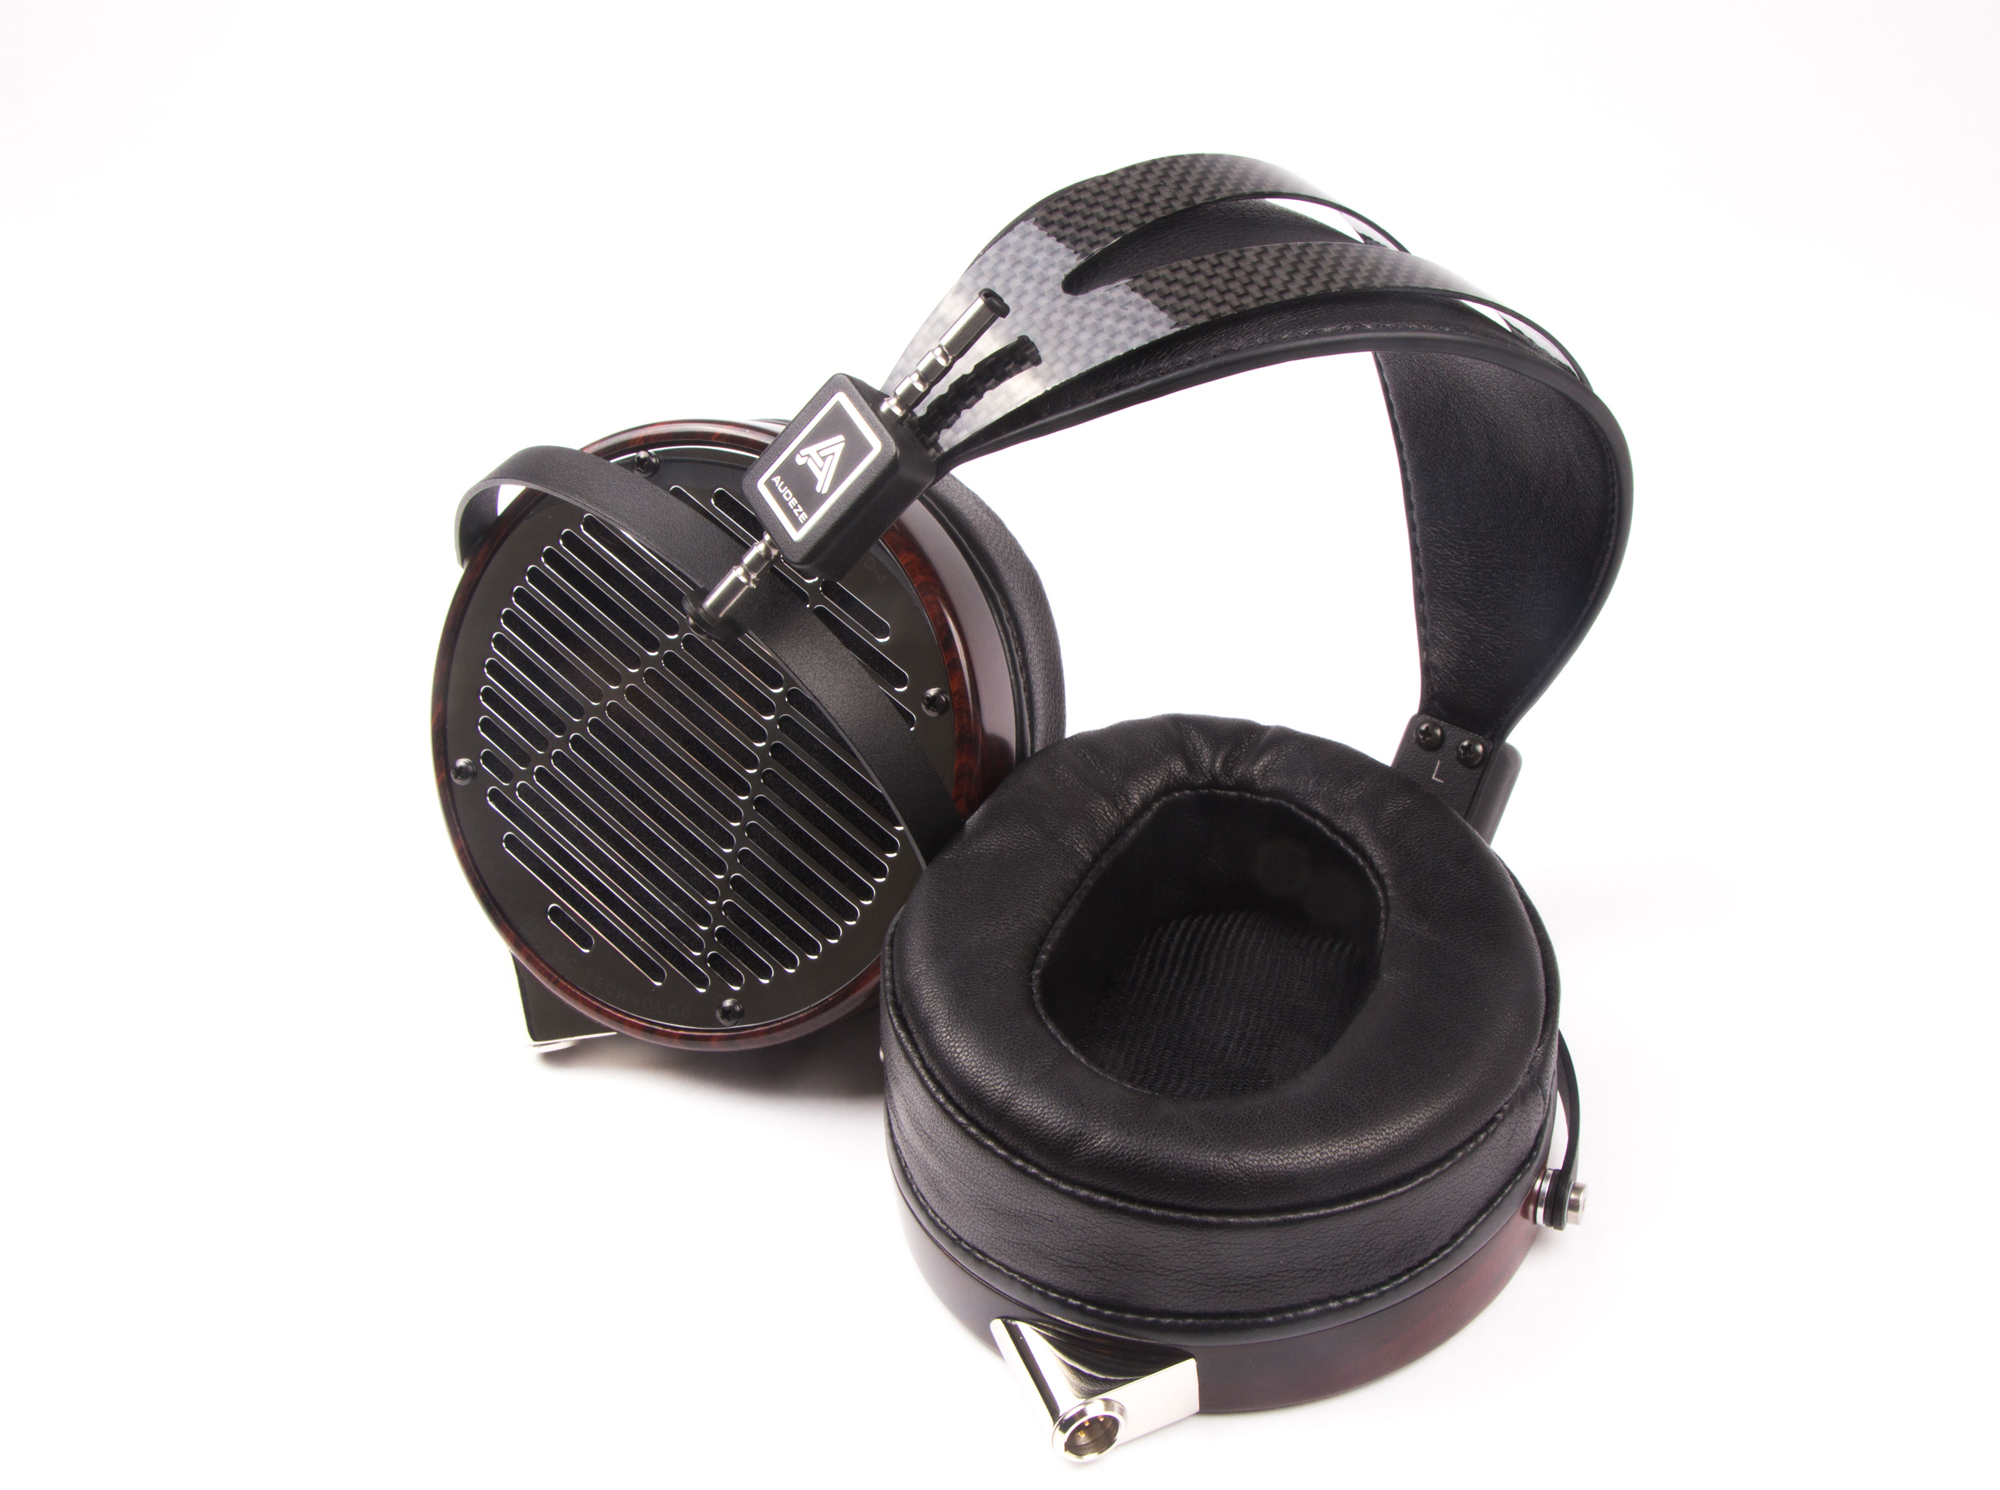 The Audeze Lcd 4 Review Audiohead